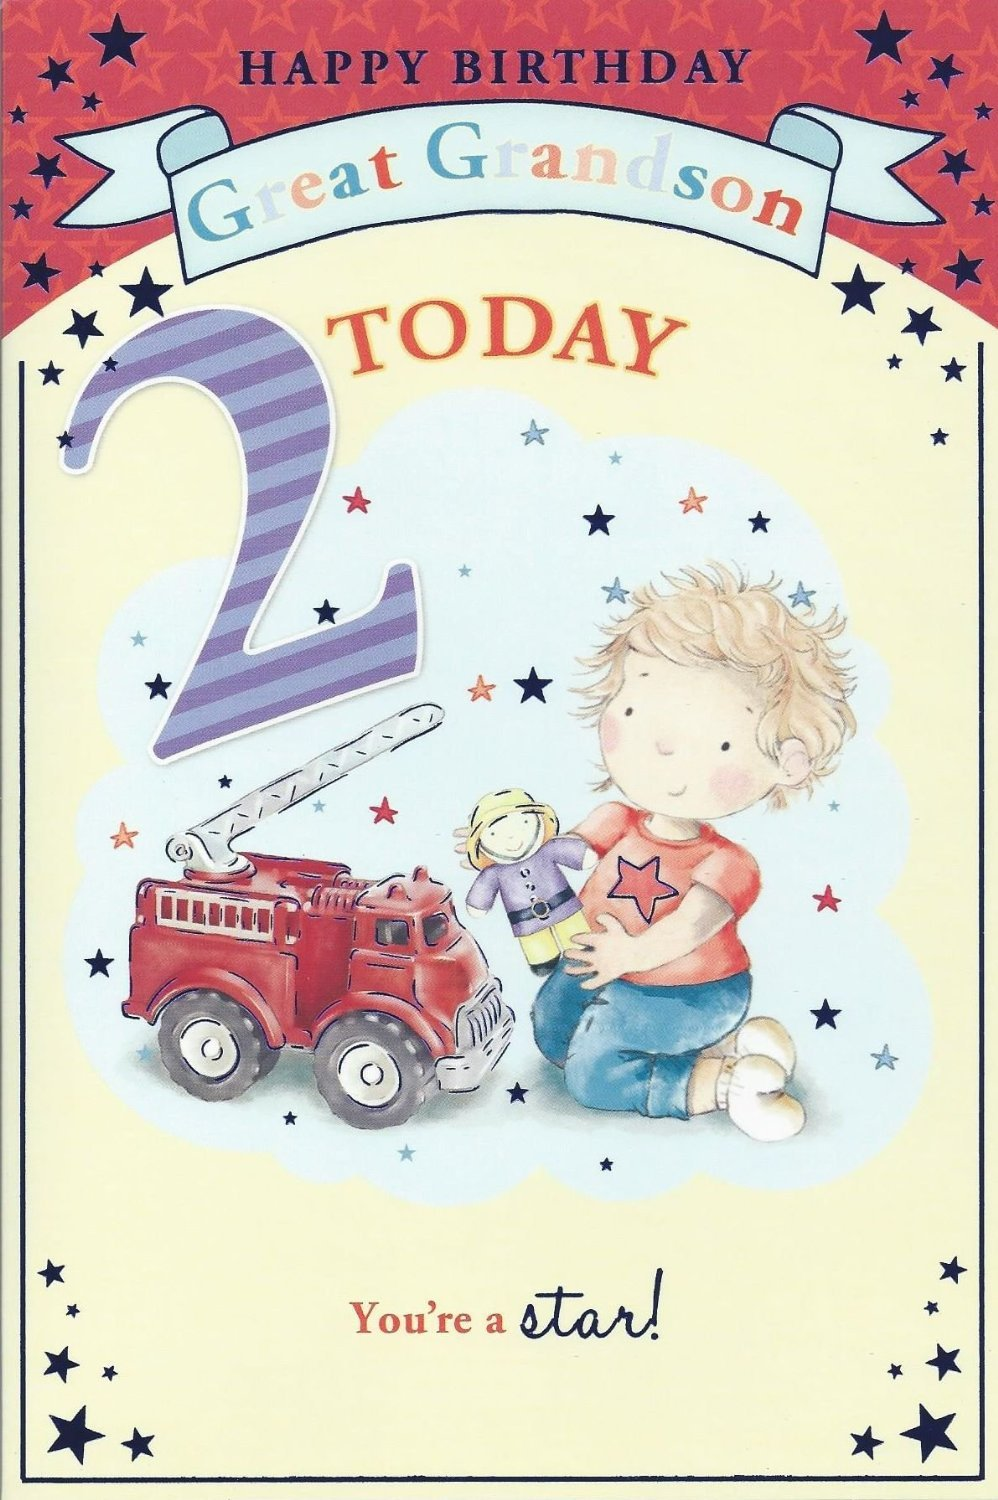 Grandsons 2nd Birthday Card 2 Today Little Boy Bear Driving – 2nd Birthday Cards